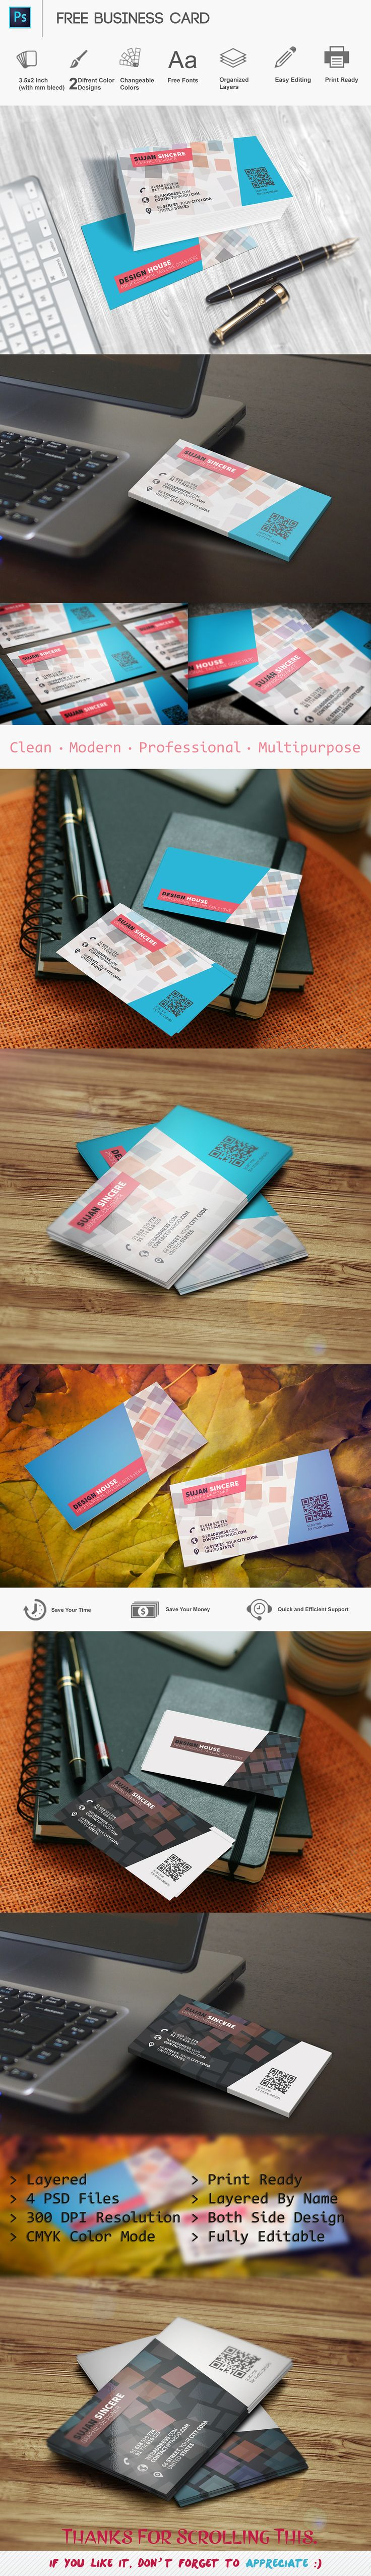 256 best free business card templates images on pinterest